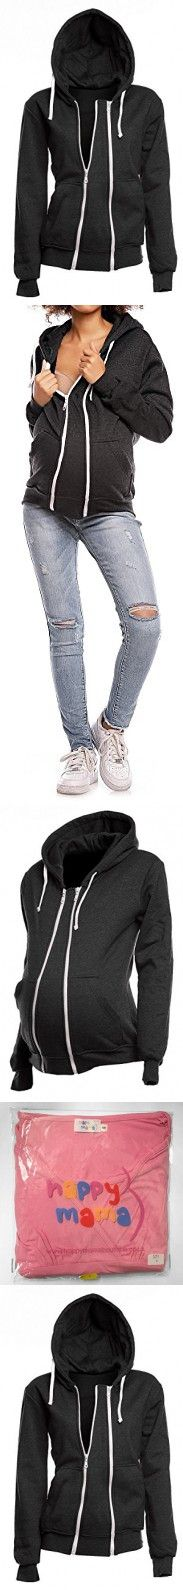 Happy Mama. Womens Maternity Warm Hoodie Zip Front Top Removable Insert. 355p (Graphite Melange, US 6/8, L)